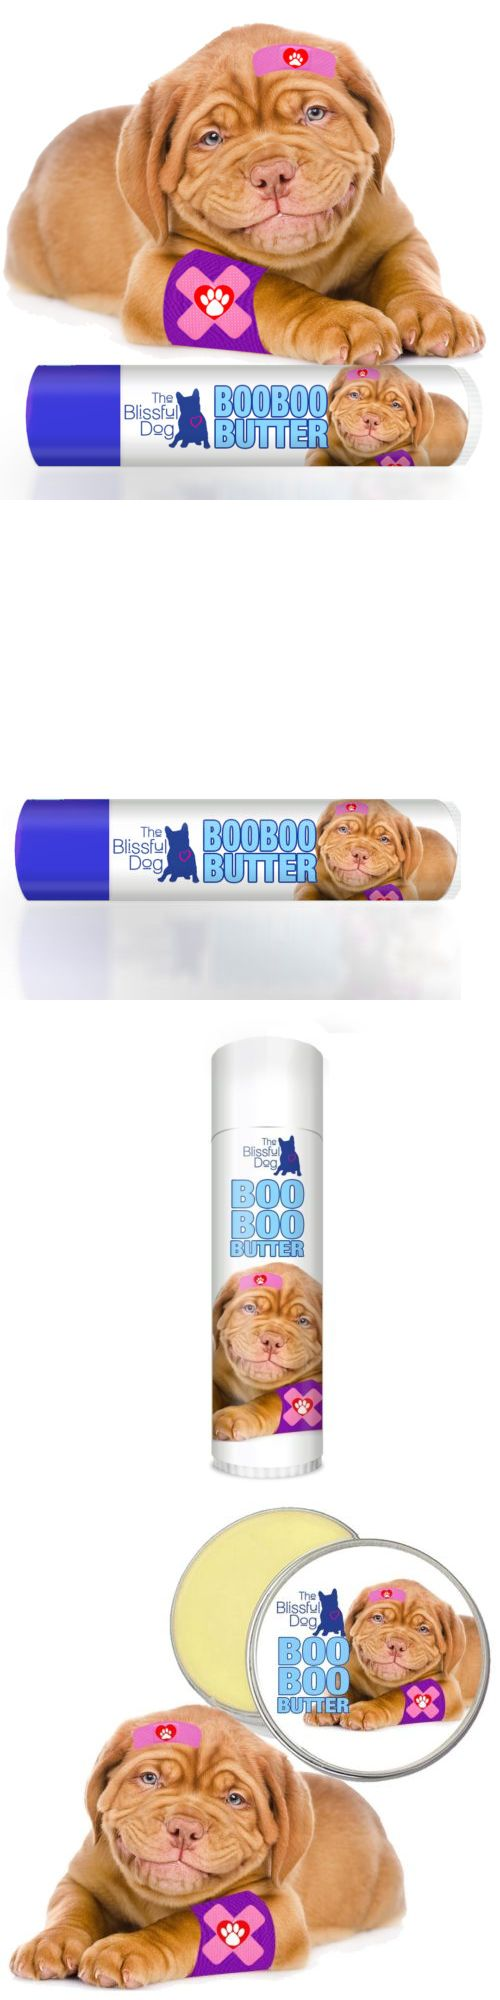 Other Dog Grooming 177794: Dogue De Bordeaux French Mastiff Boo Boo Butter For Minor Skin Irritations -> BUY IT NOW ONLY: $36.95 on eBay!